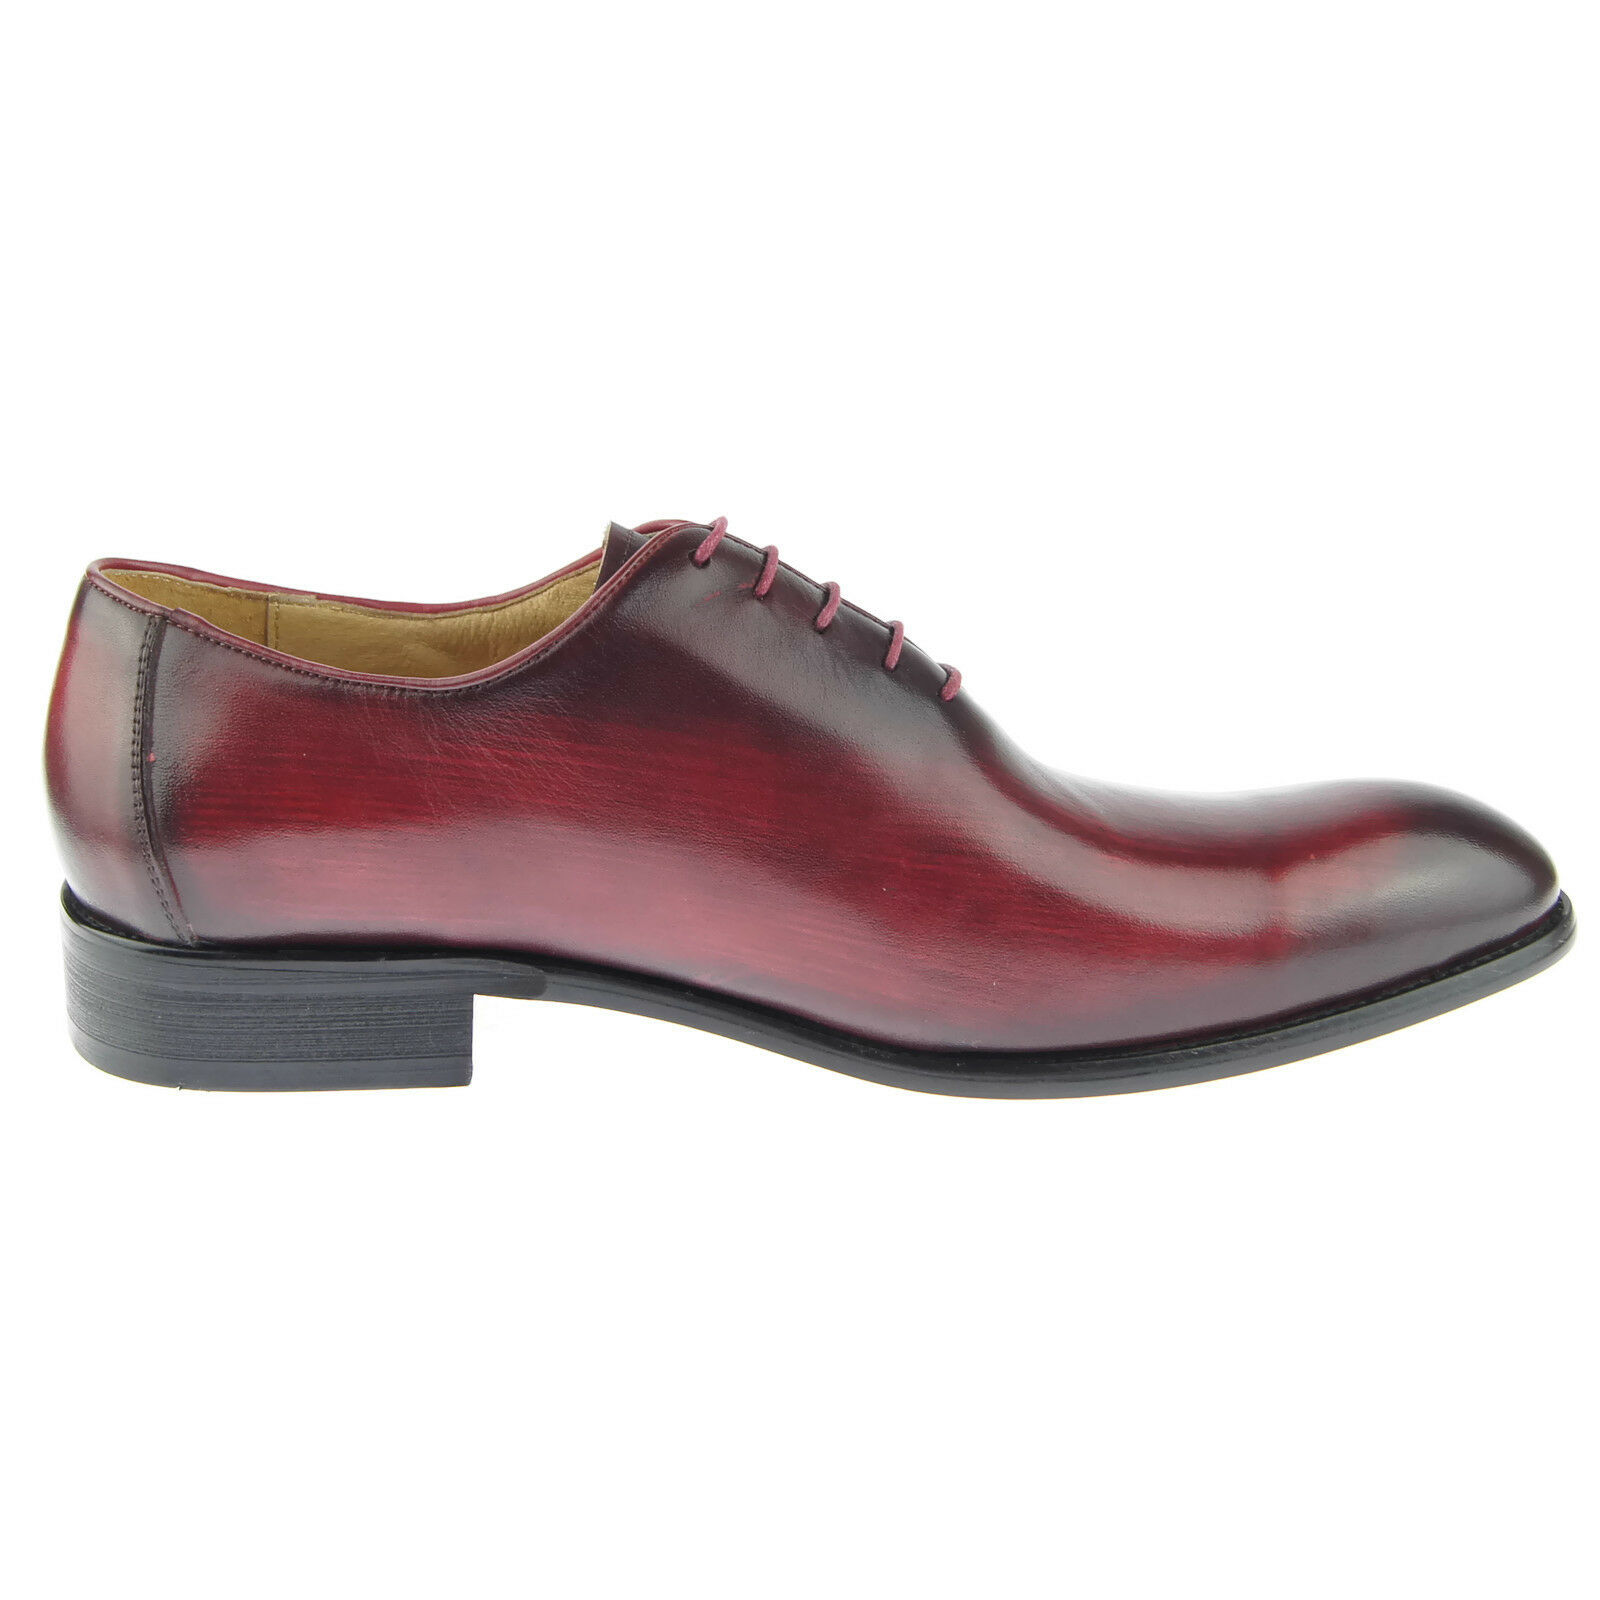 Carrucci Plain Toe Wholecut Oxford, Men's Dress Leather Shoes, Burgundy 1